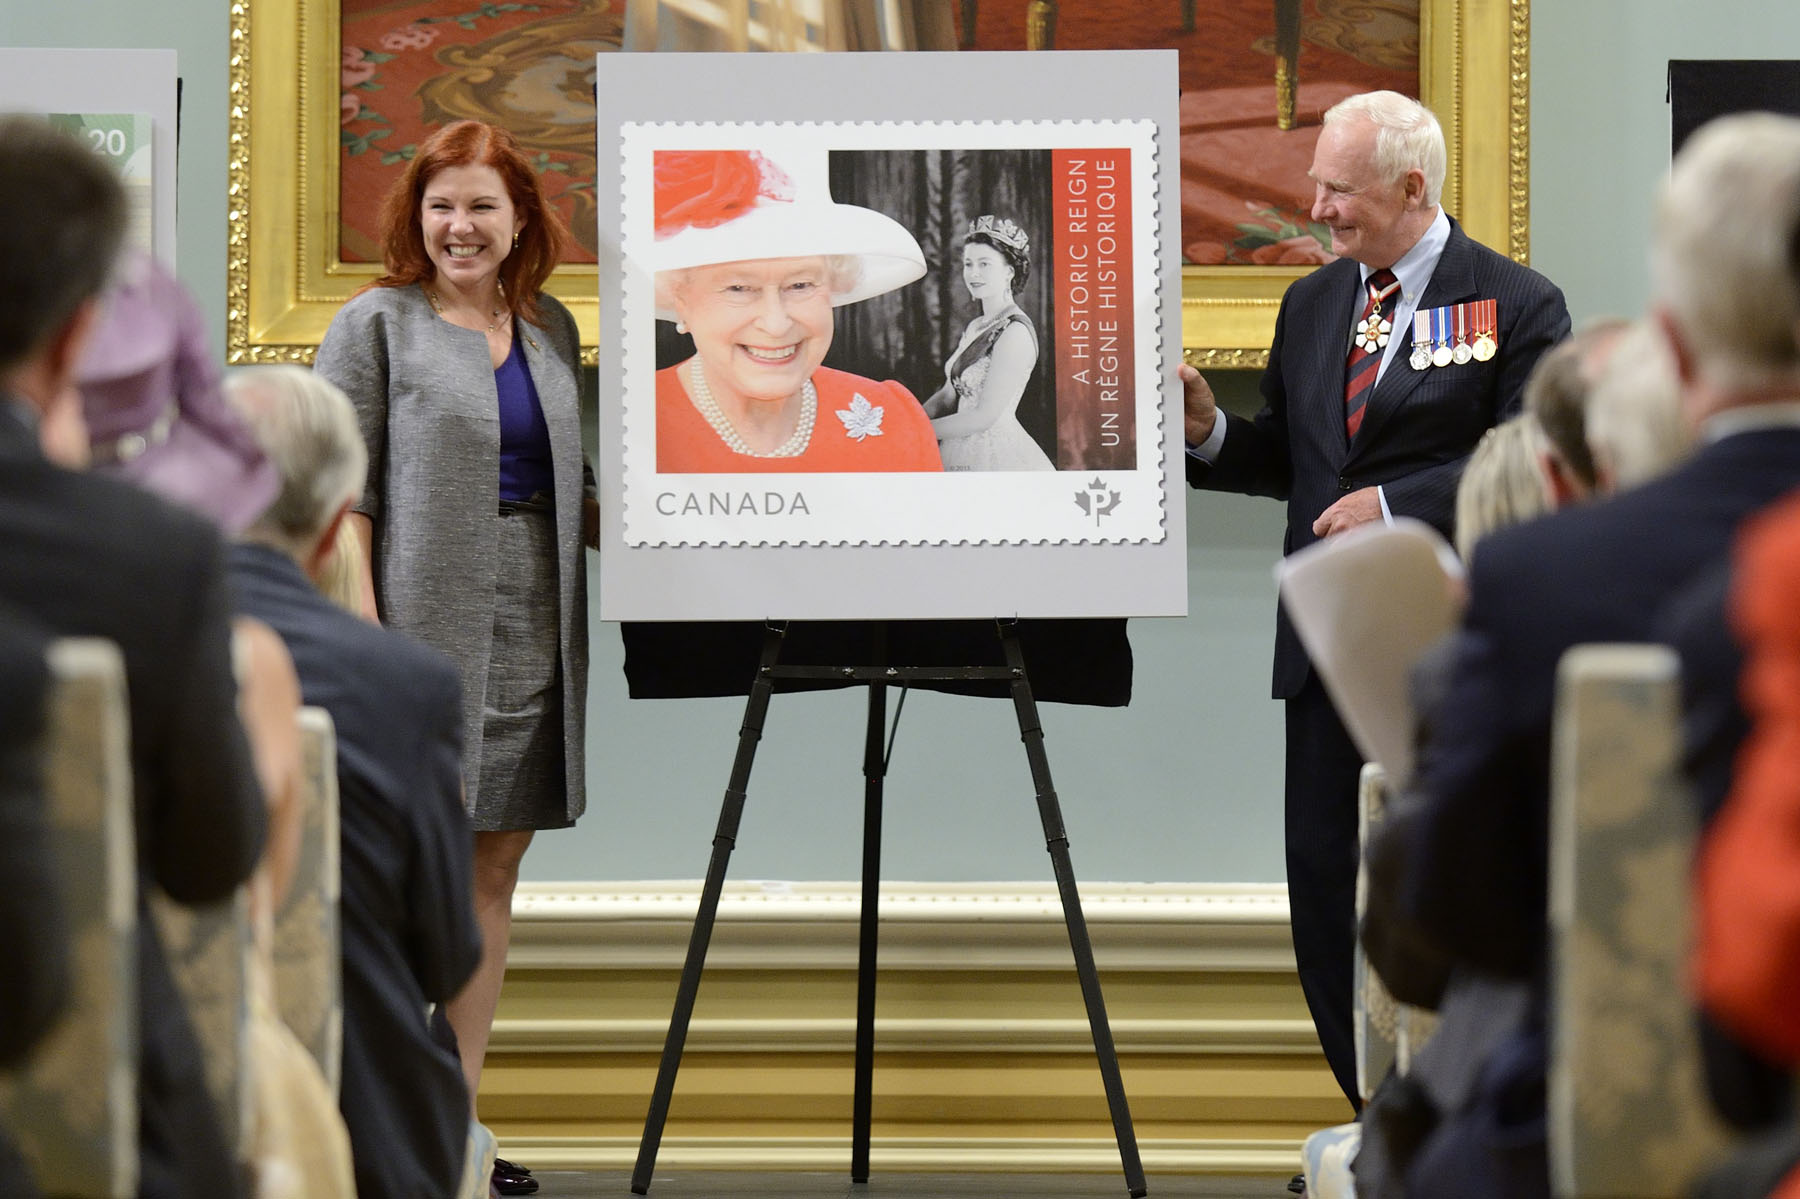 His Excellency then helped Mrs. Siân Matthews, Chairperson of the Board of Directors and Chairperson of the Strategic Initiatives Oversight of Canada Post, unveil a commemorative stamp.